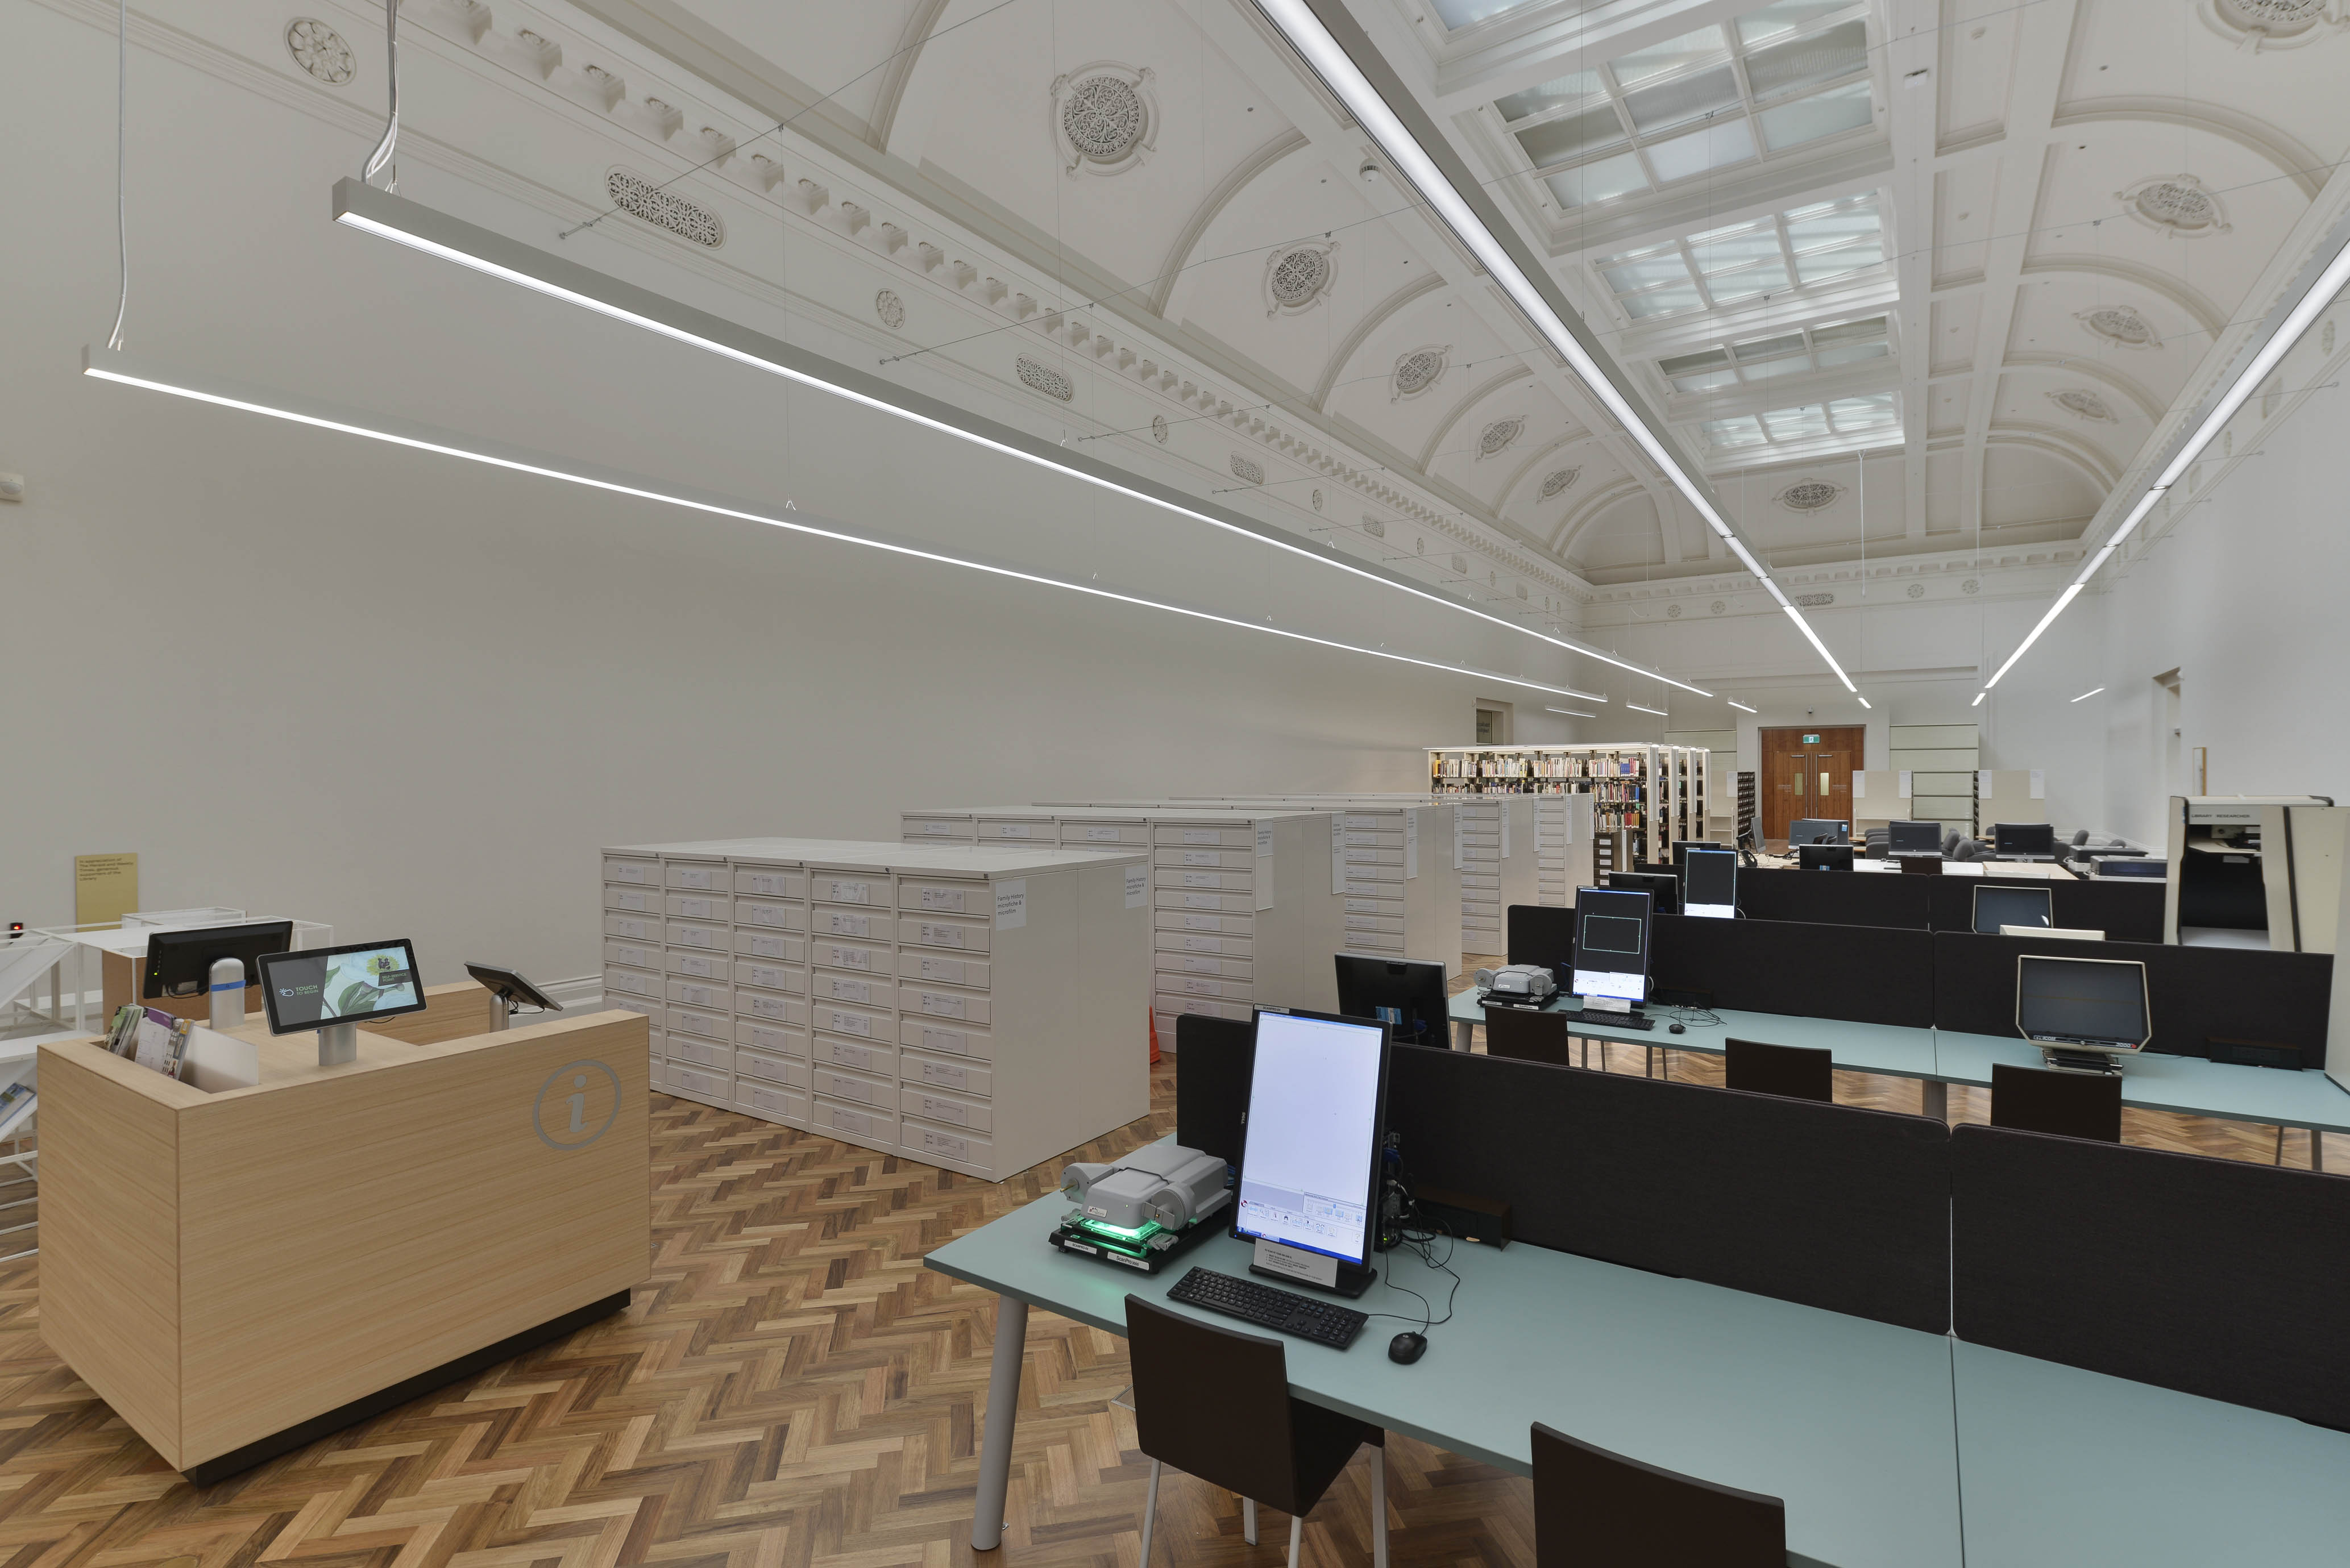 SLV_Newspapers and Family History Reading Rooms (2)_Credit Patrick Rodriguez